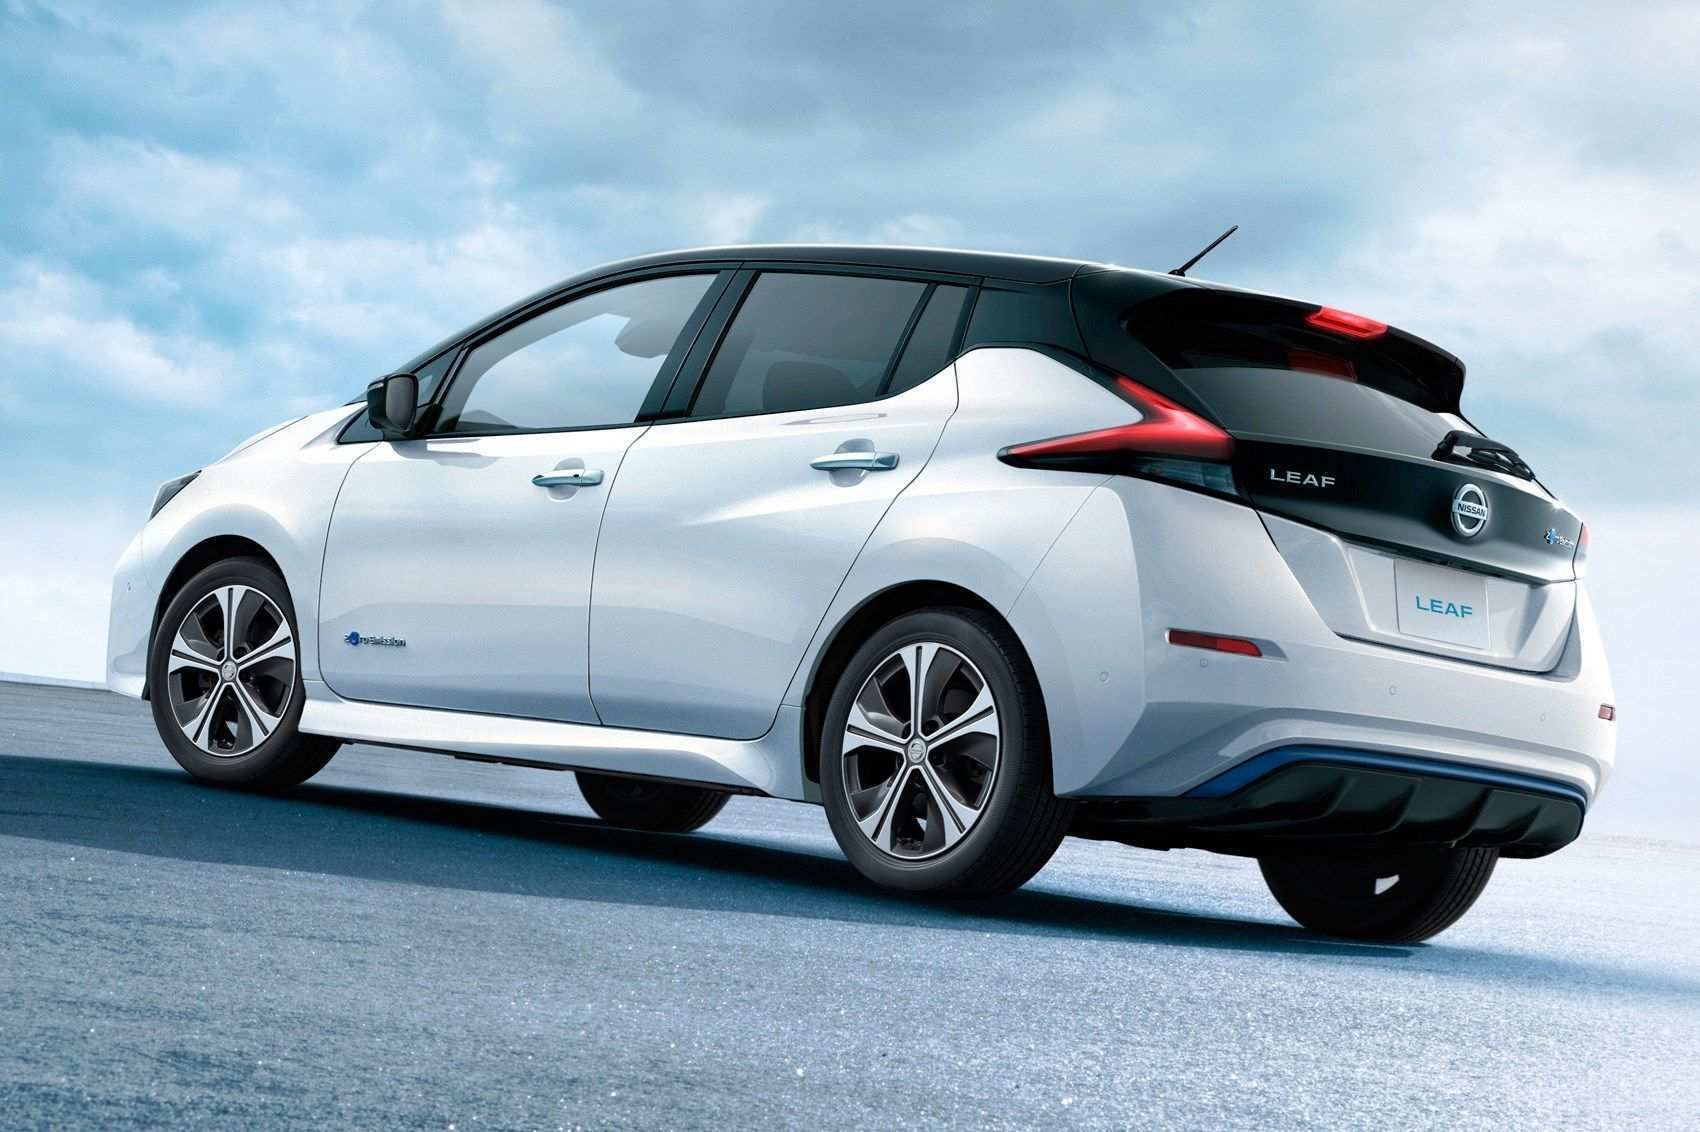 66 Gallery of Nissan Leaf 2020 Uk Photos with Nissan Leaf 2020 Uk